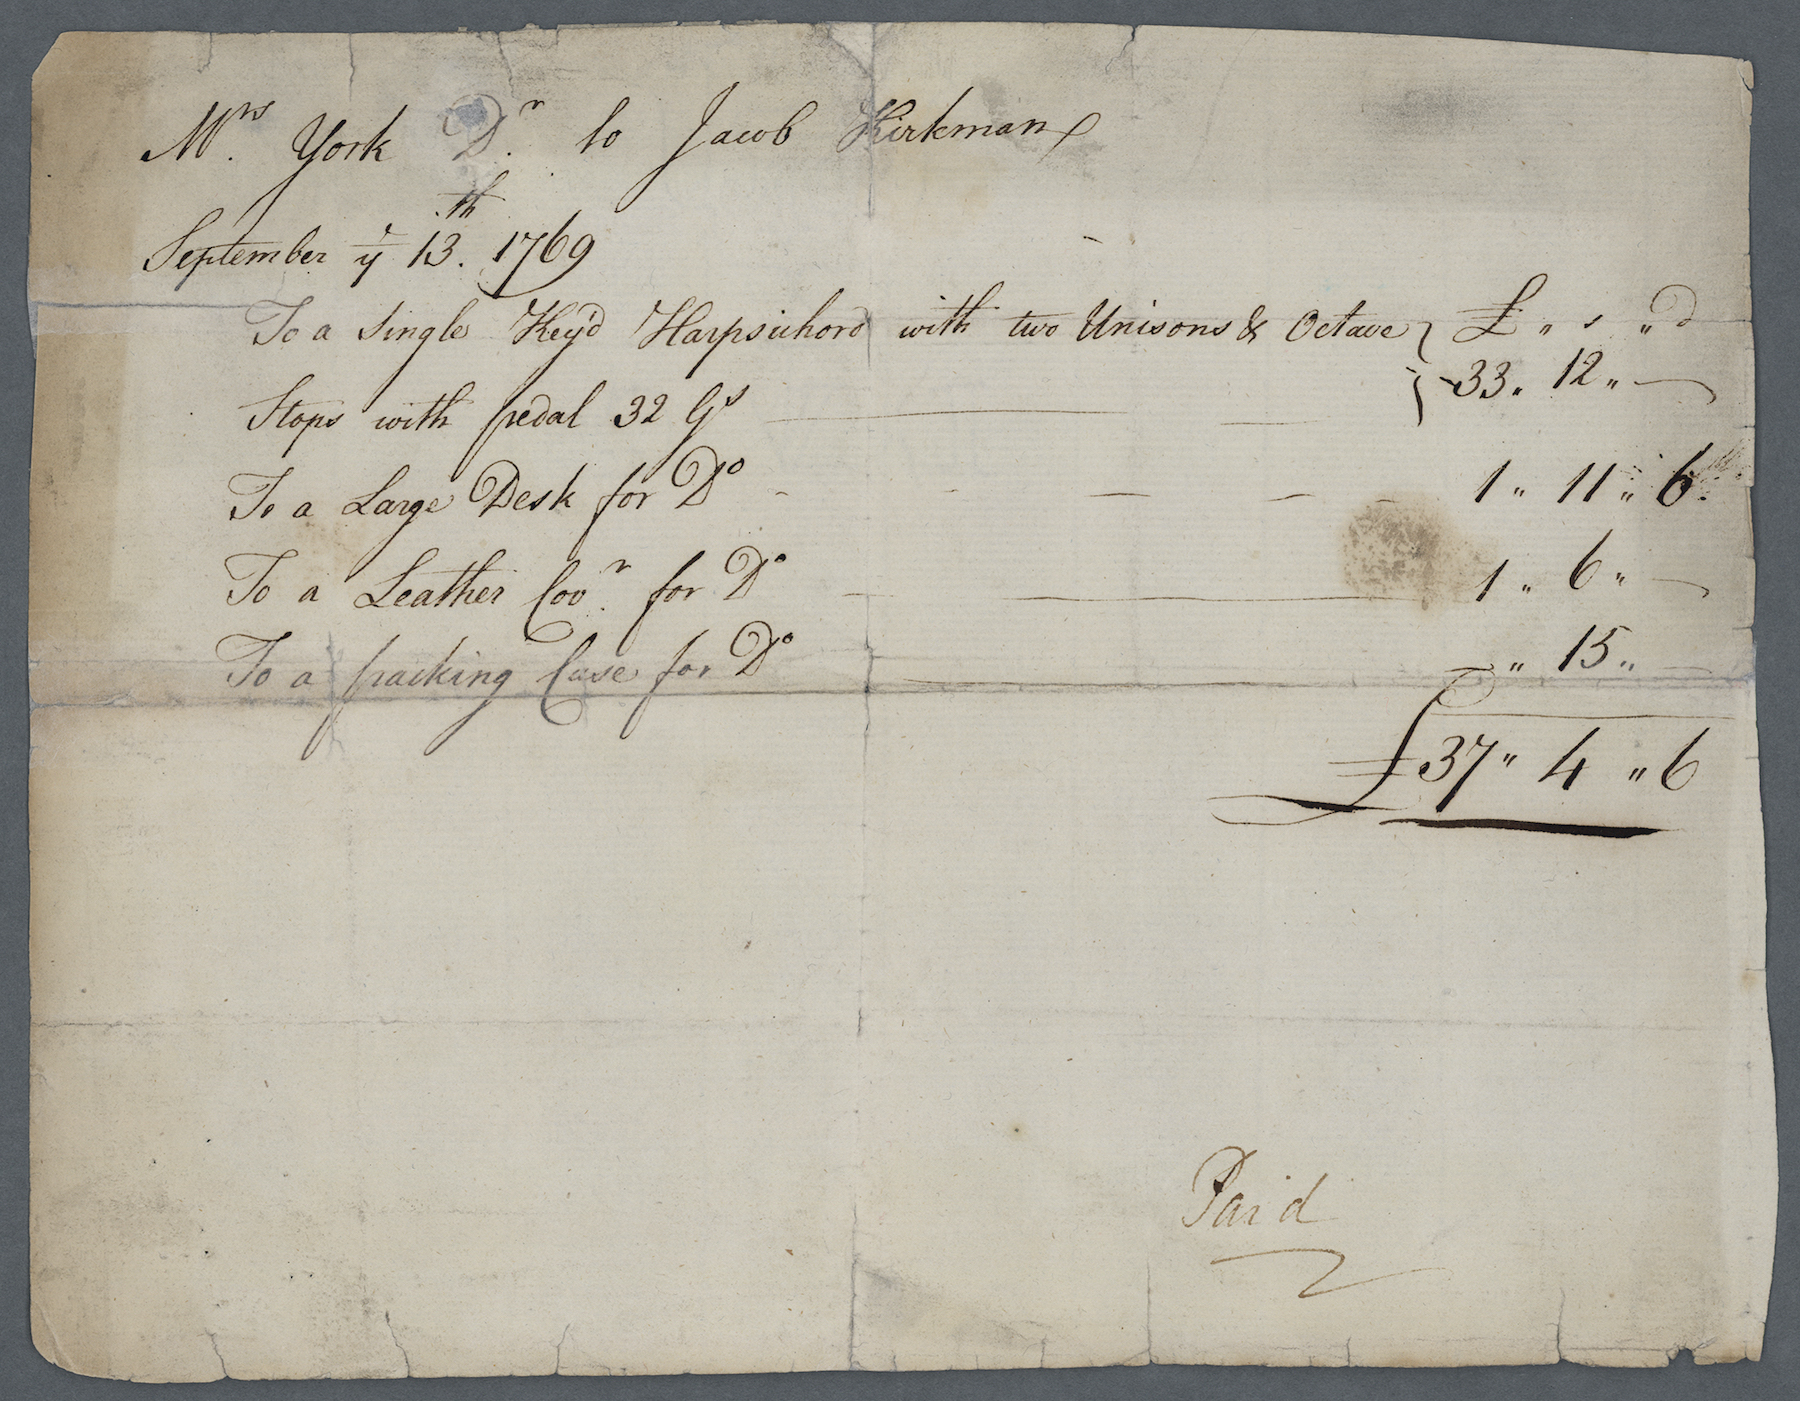 Bill for AJY's harpsichord